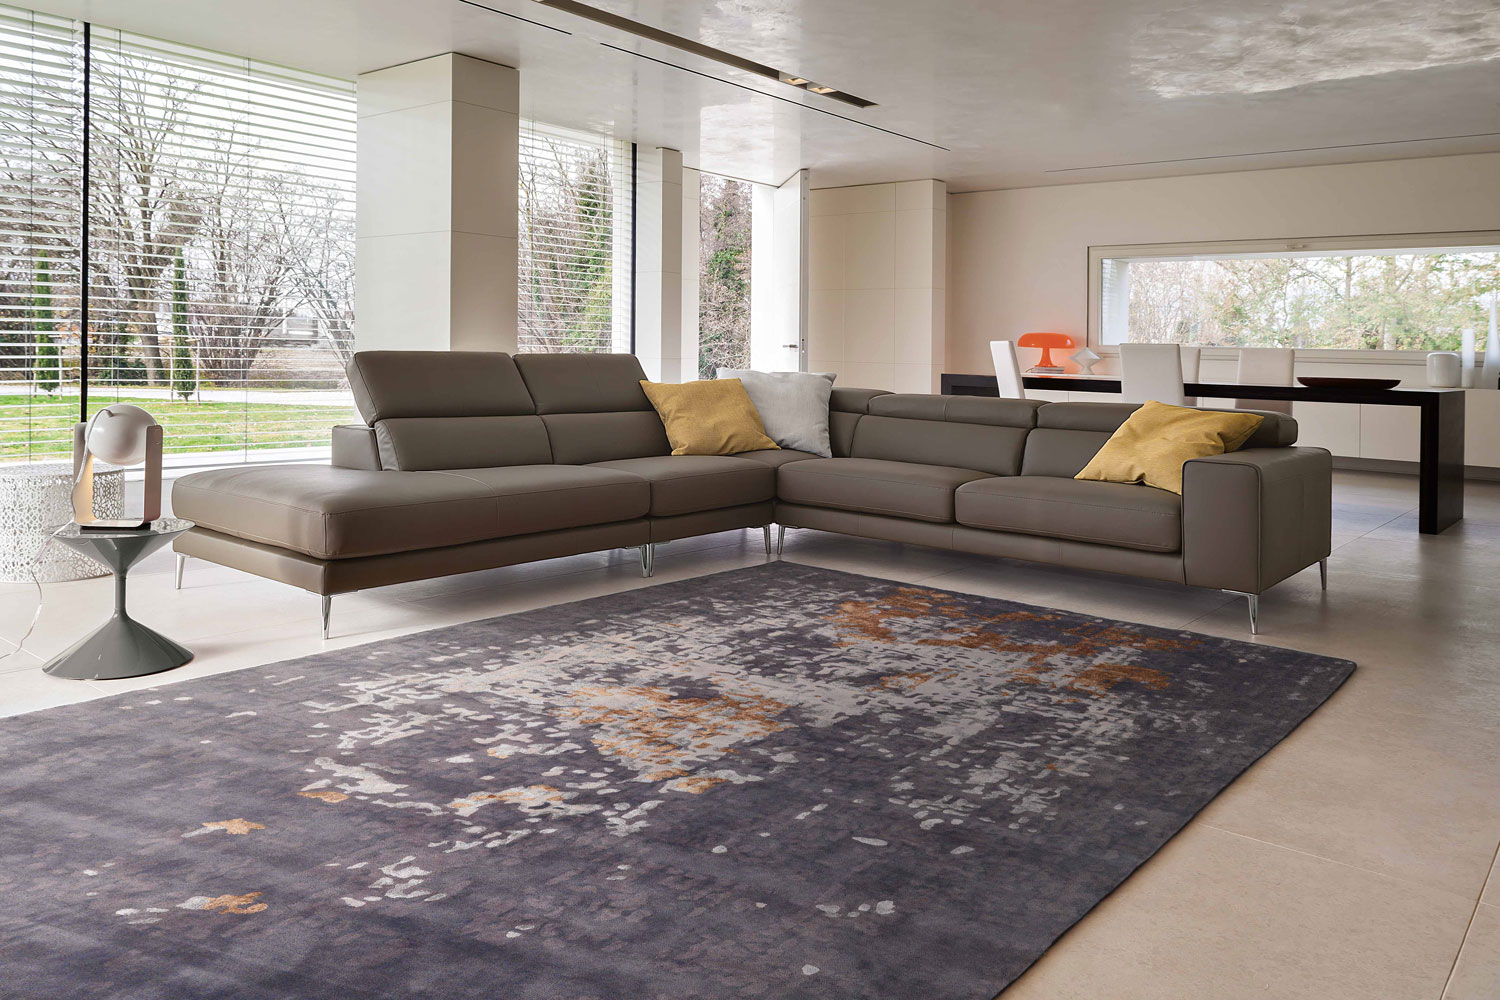 Anderson Sofa luxury Madelia paris